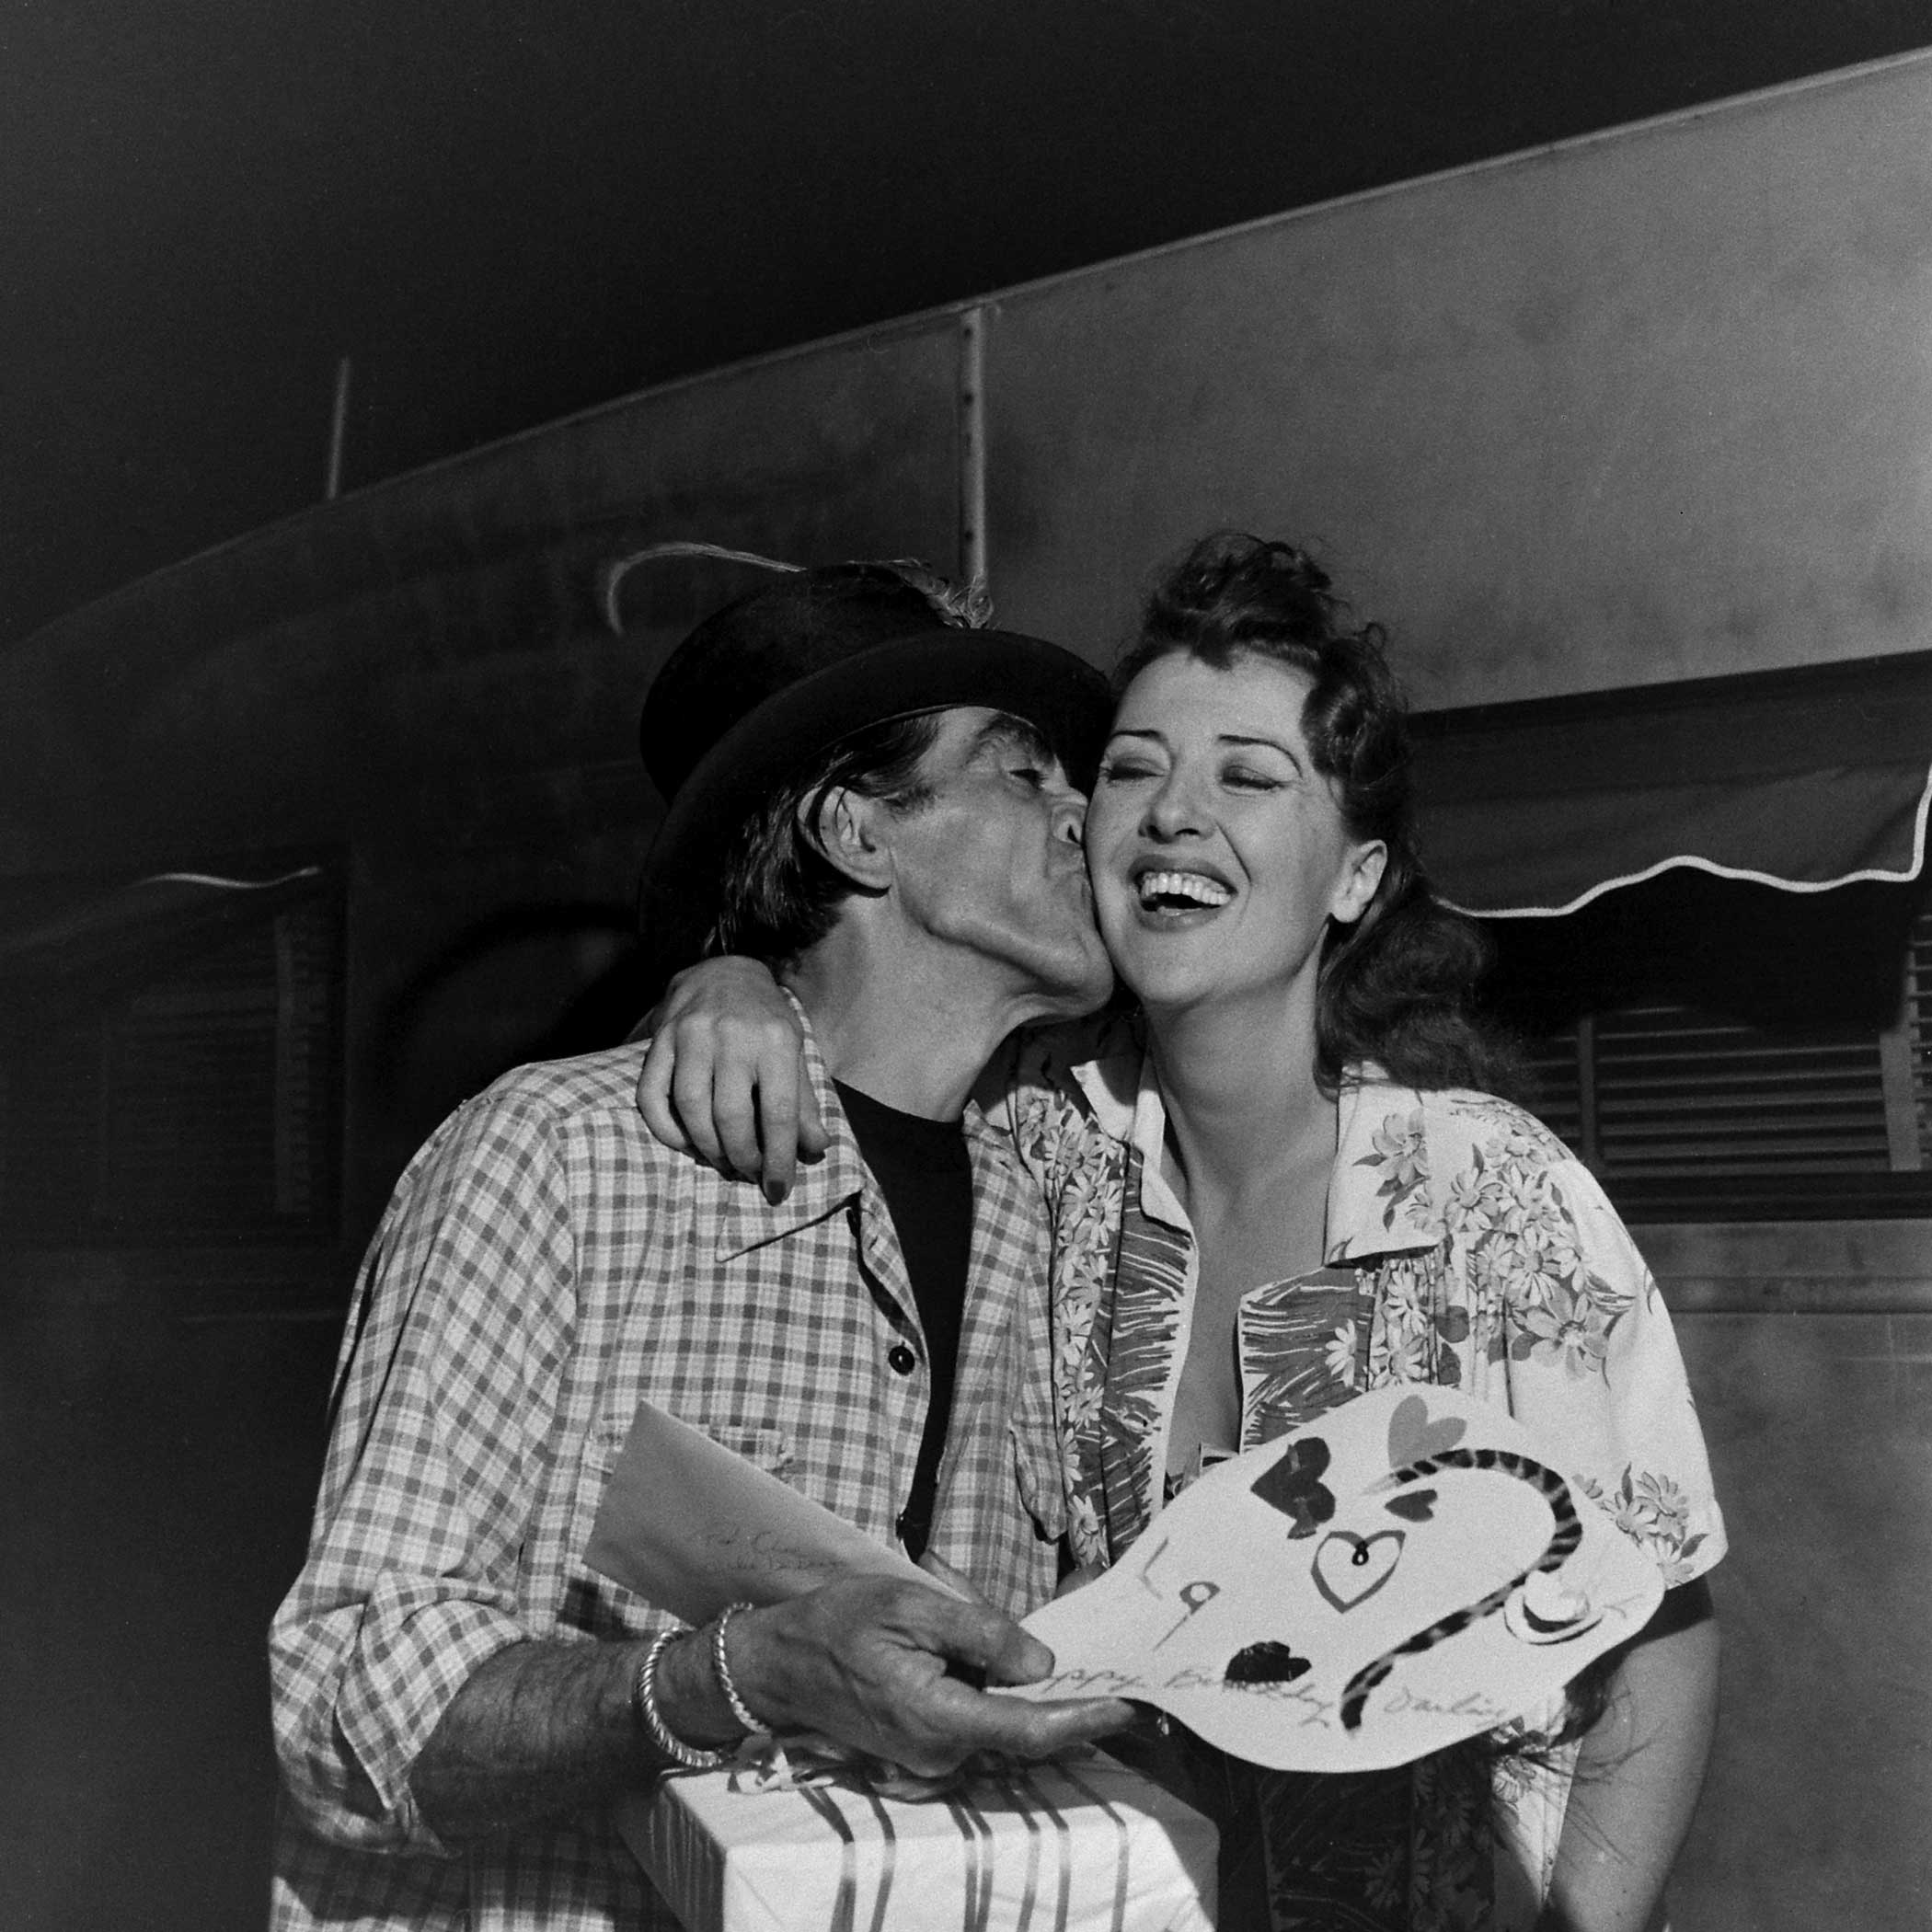 <b>Not published in LIFE.</b> Gypsy Rose Lee with her third husband, the painter Julio de Diego, 1949.